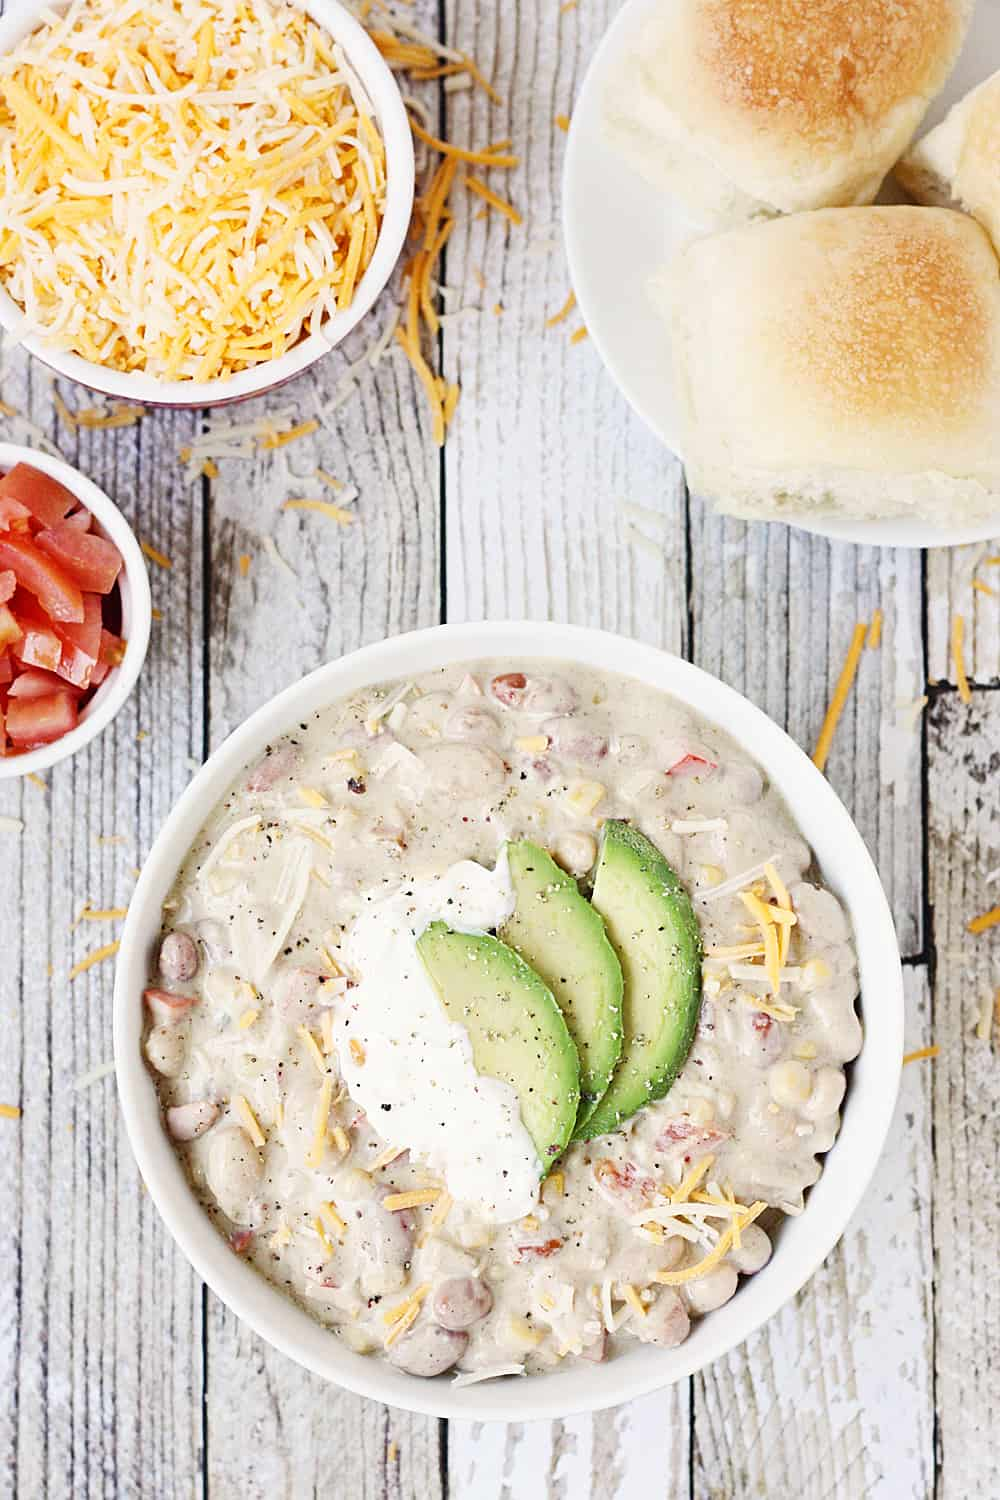 Easy Vegetarian White Bean Chili -- Busy weeknights call for yummy recipes like this easy vegetarian white bean chili. Bell pepper, onion, and corn make it extra hearty!